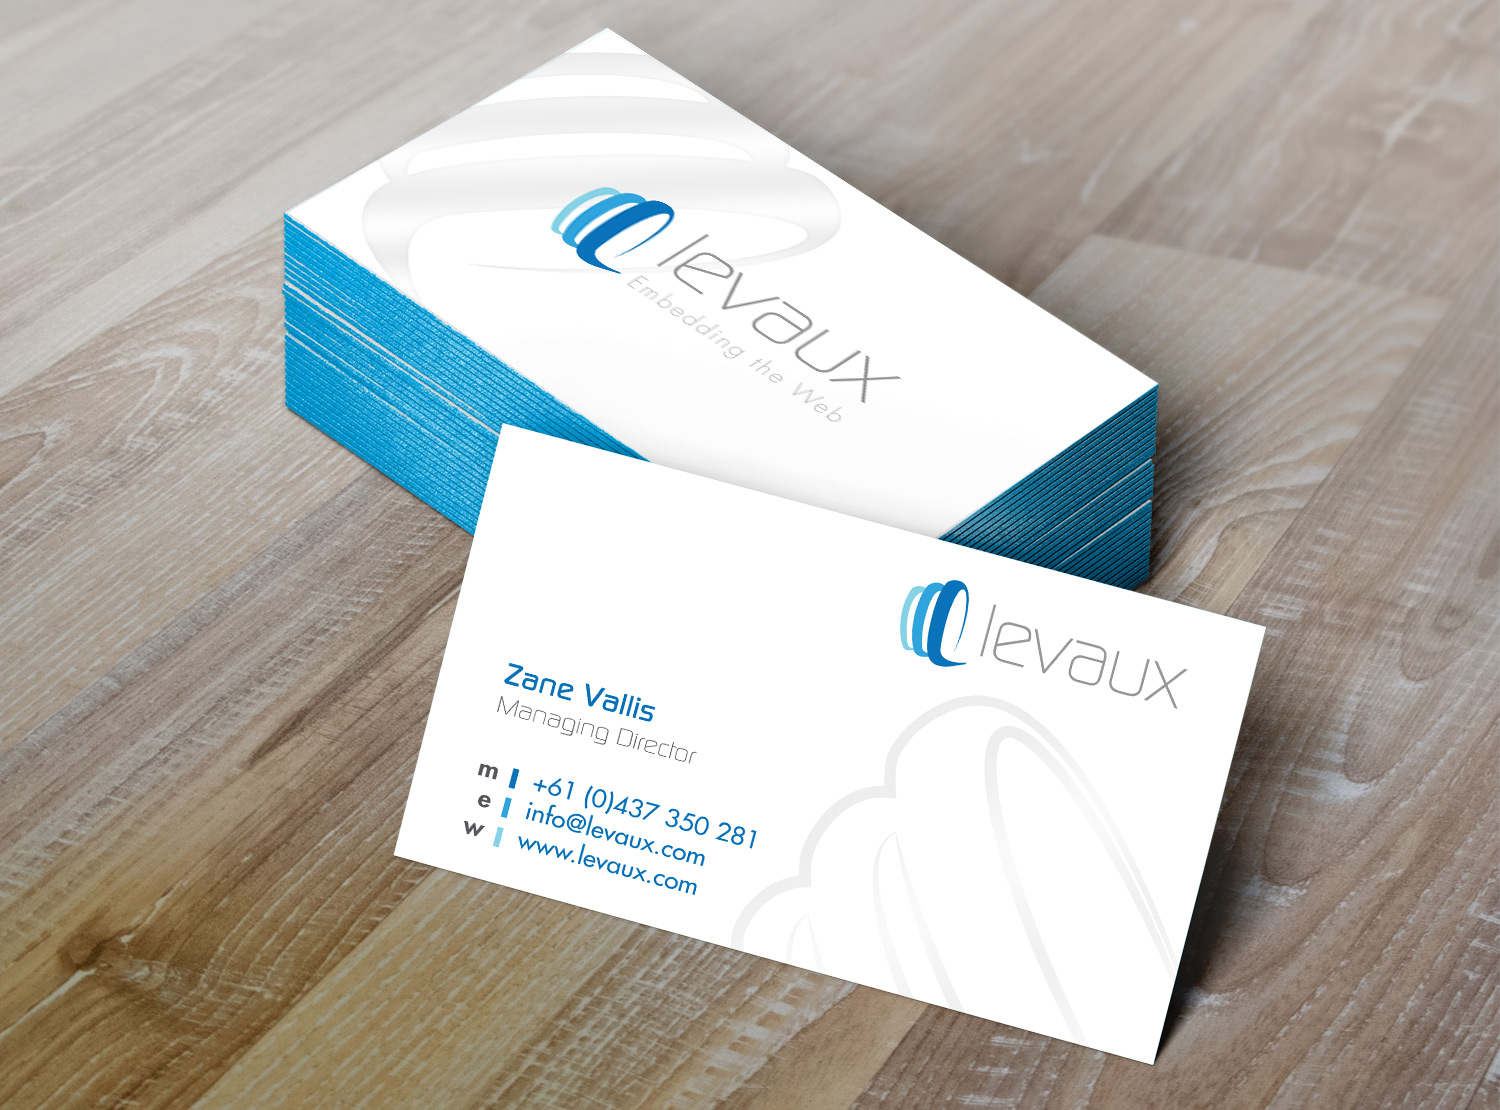 Levaux Business Card